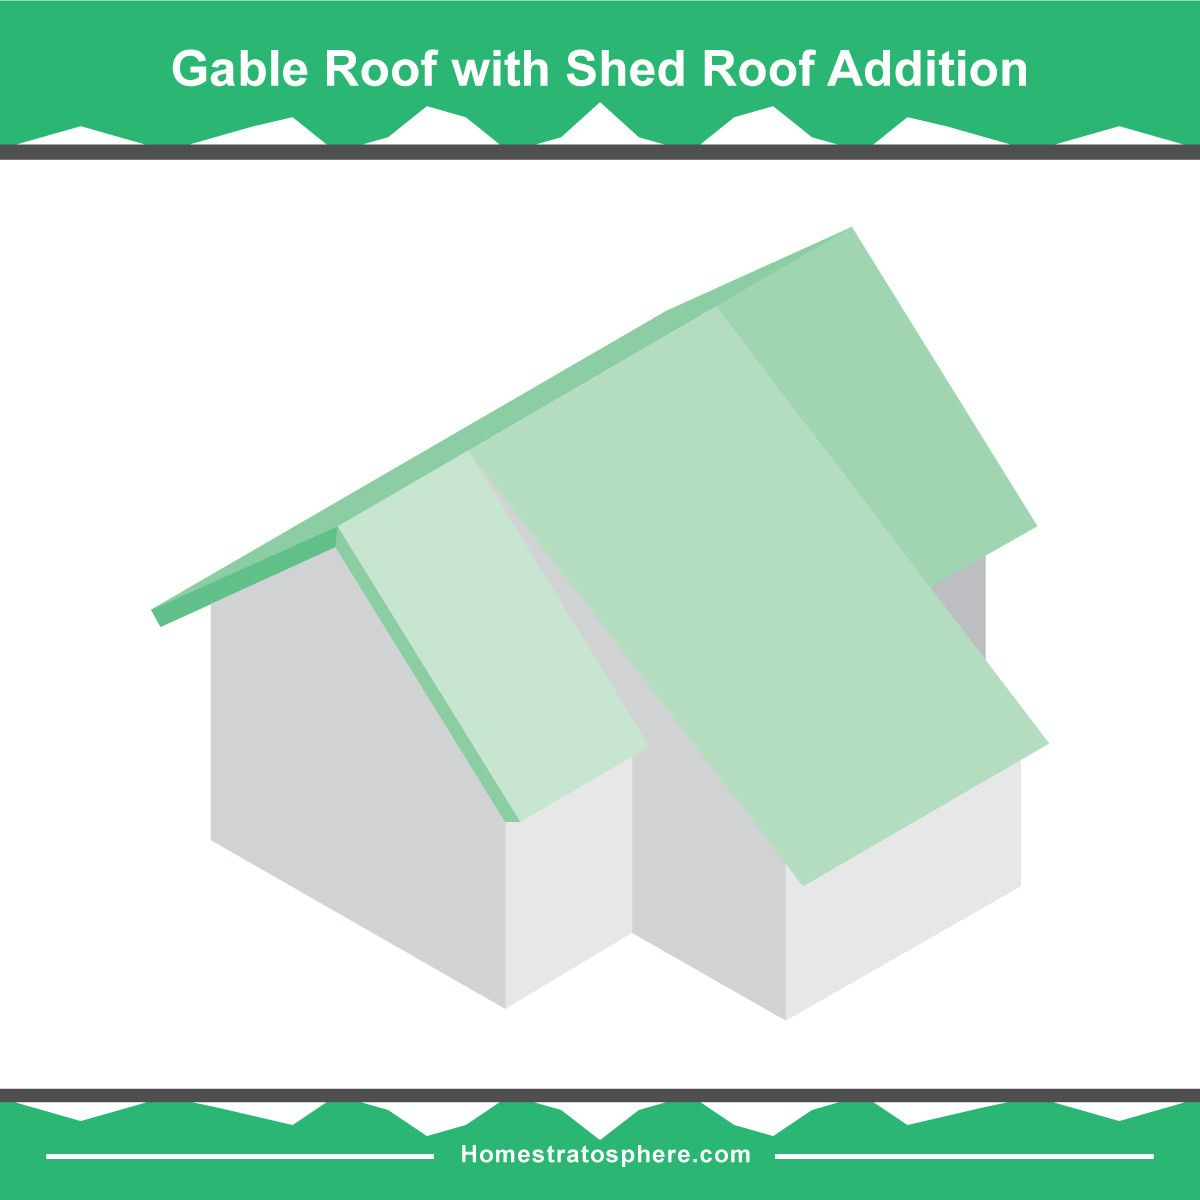 36 Types Of Roofs Styles For Houses Illustrated Roof Design Examples Roof Design Gable Roof Shed Roof